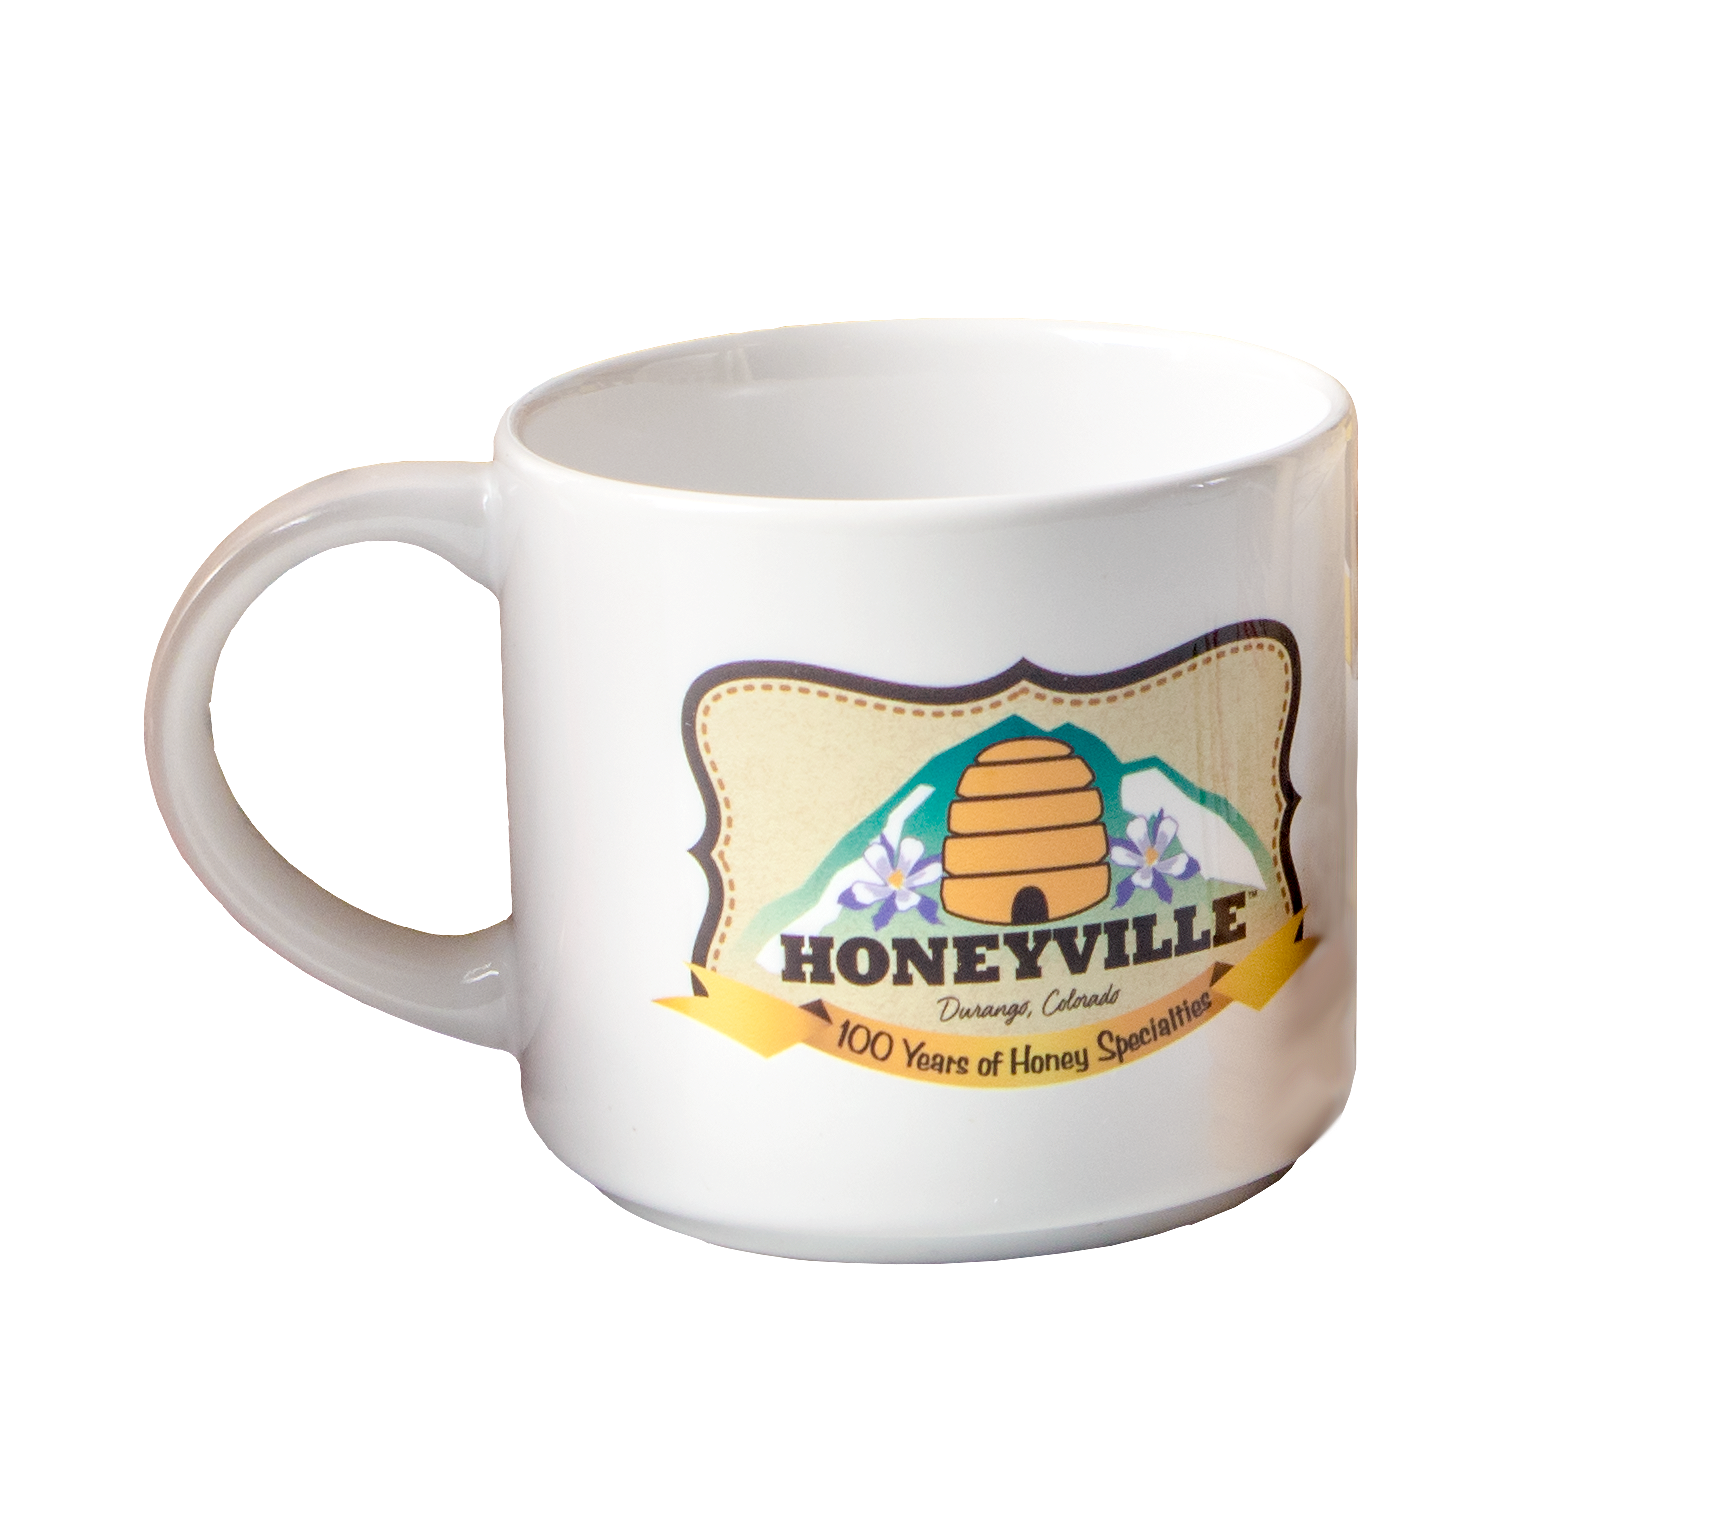 100TH ANNIVERSARY HONEYVILLE MUG